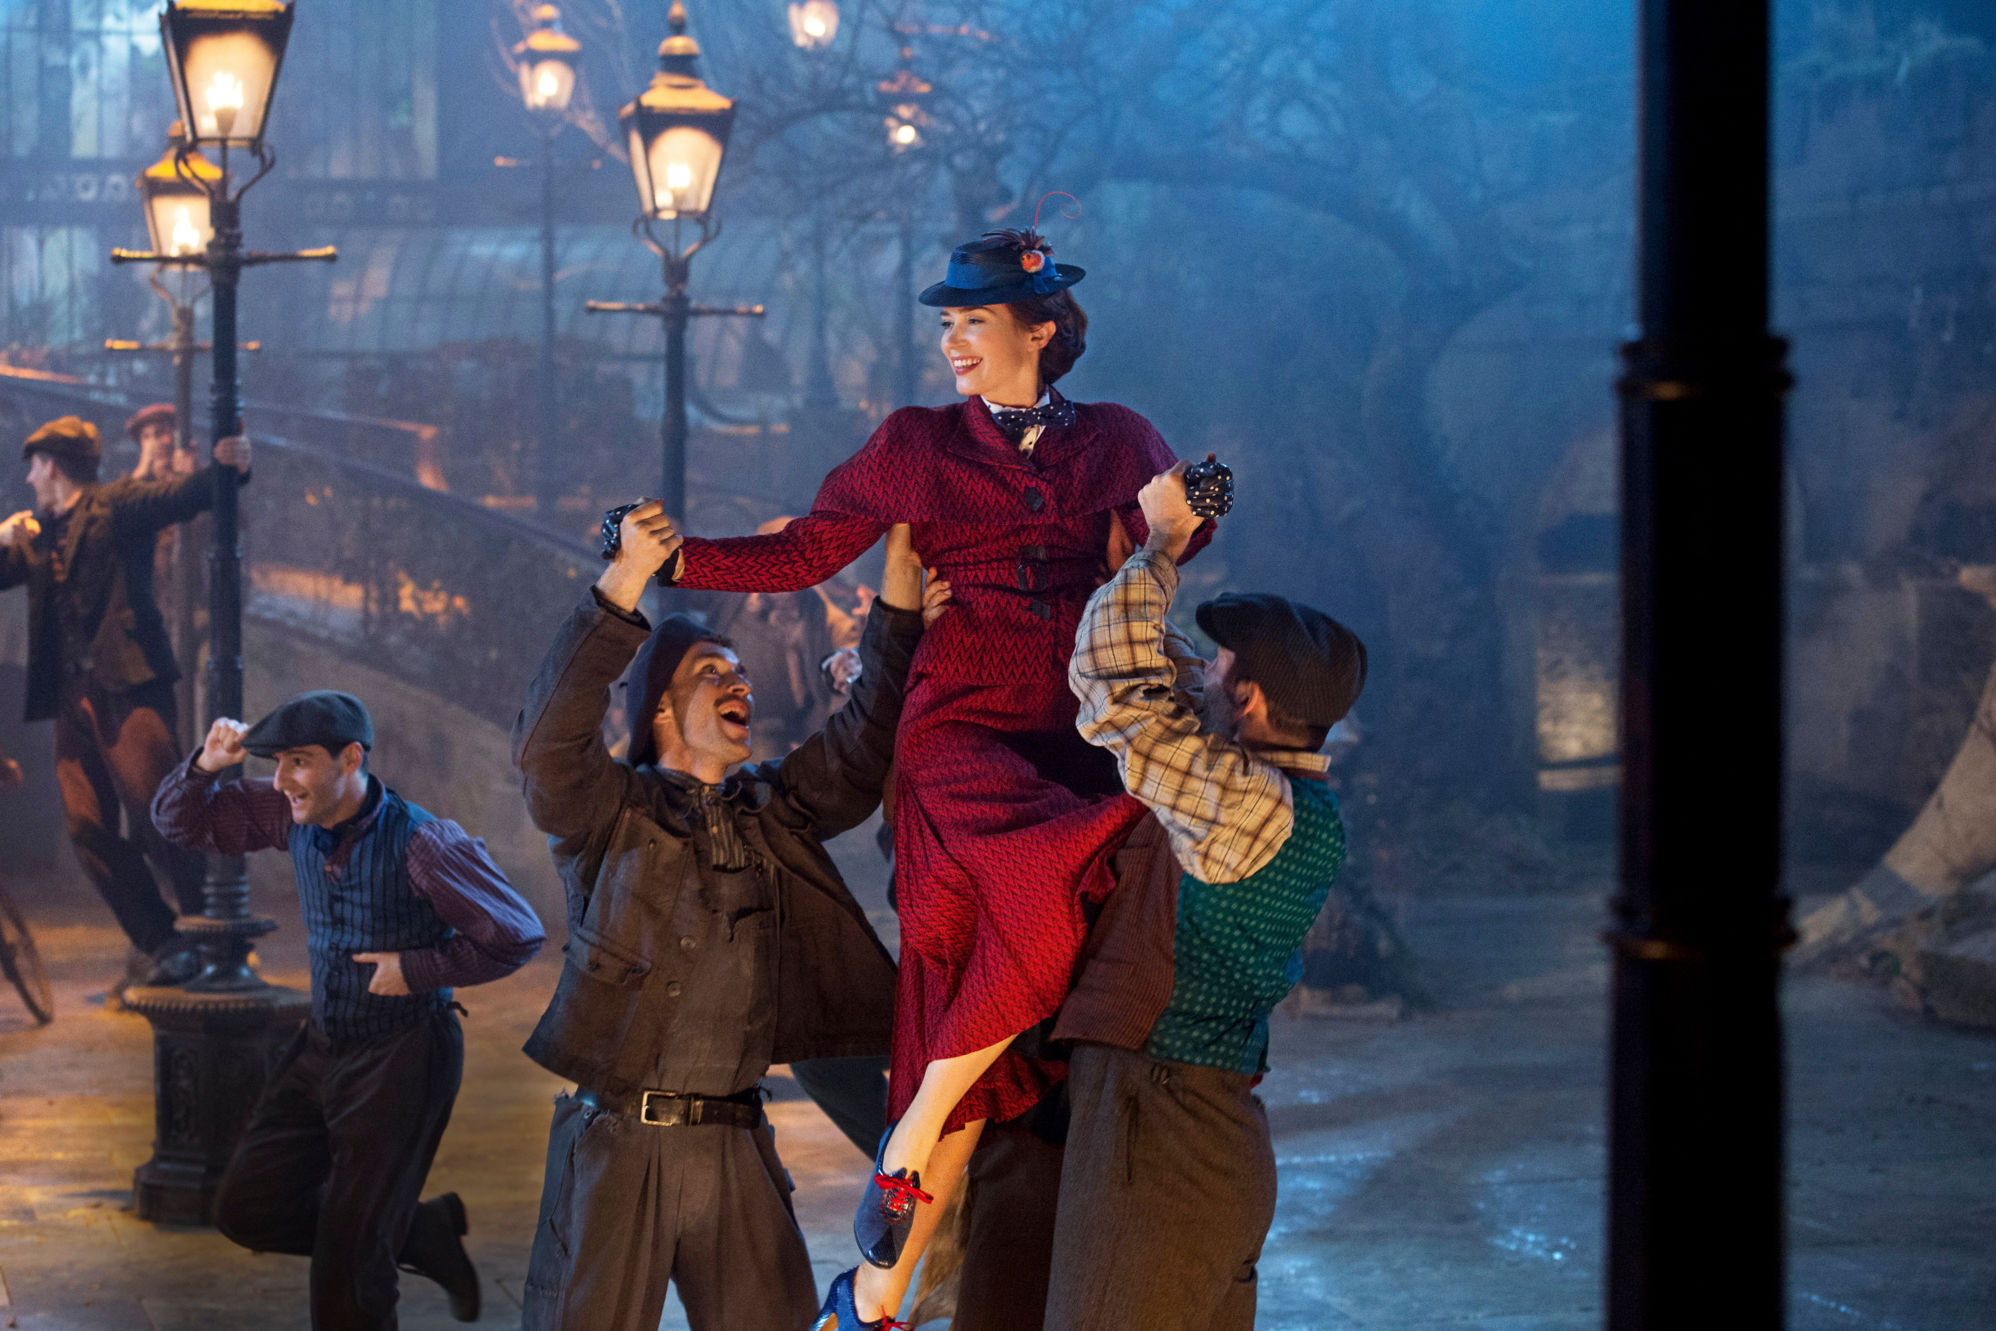 Mary Poppins Returns: Lin-Manuel Miranda Sings New Song in Latest Trailer for Disney Sequel